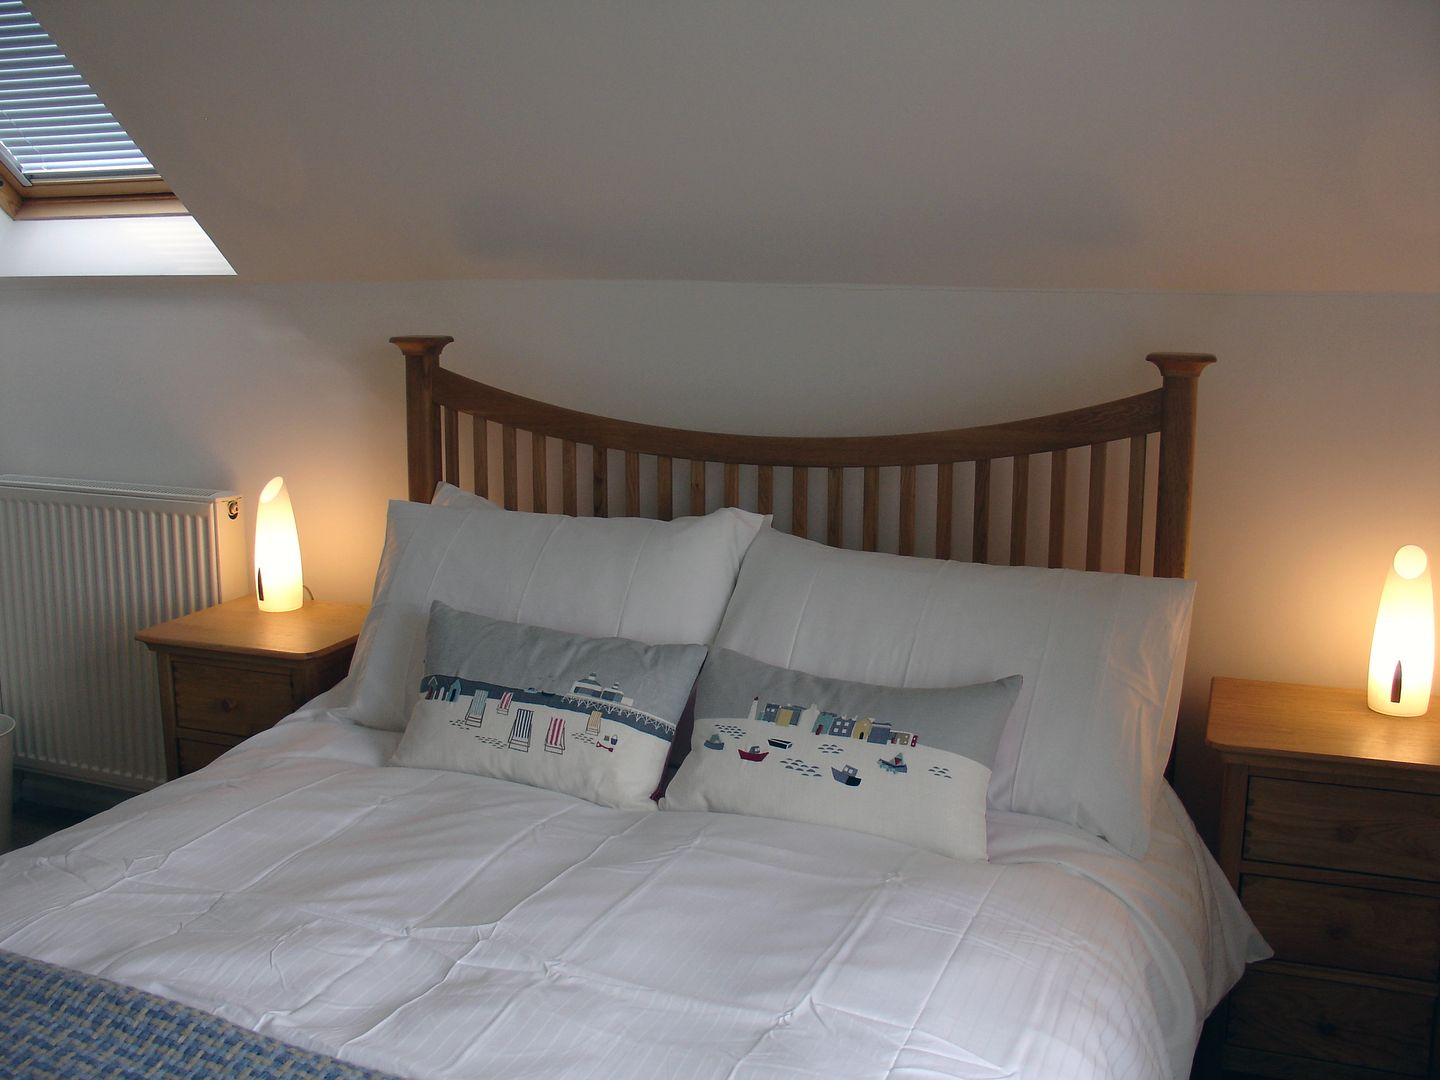 Ley Park Welcombe Double Bed